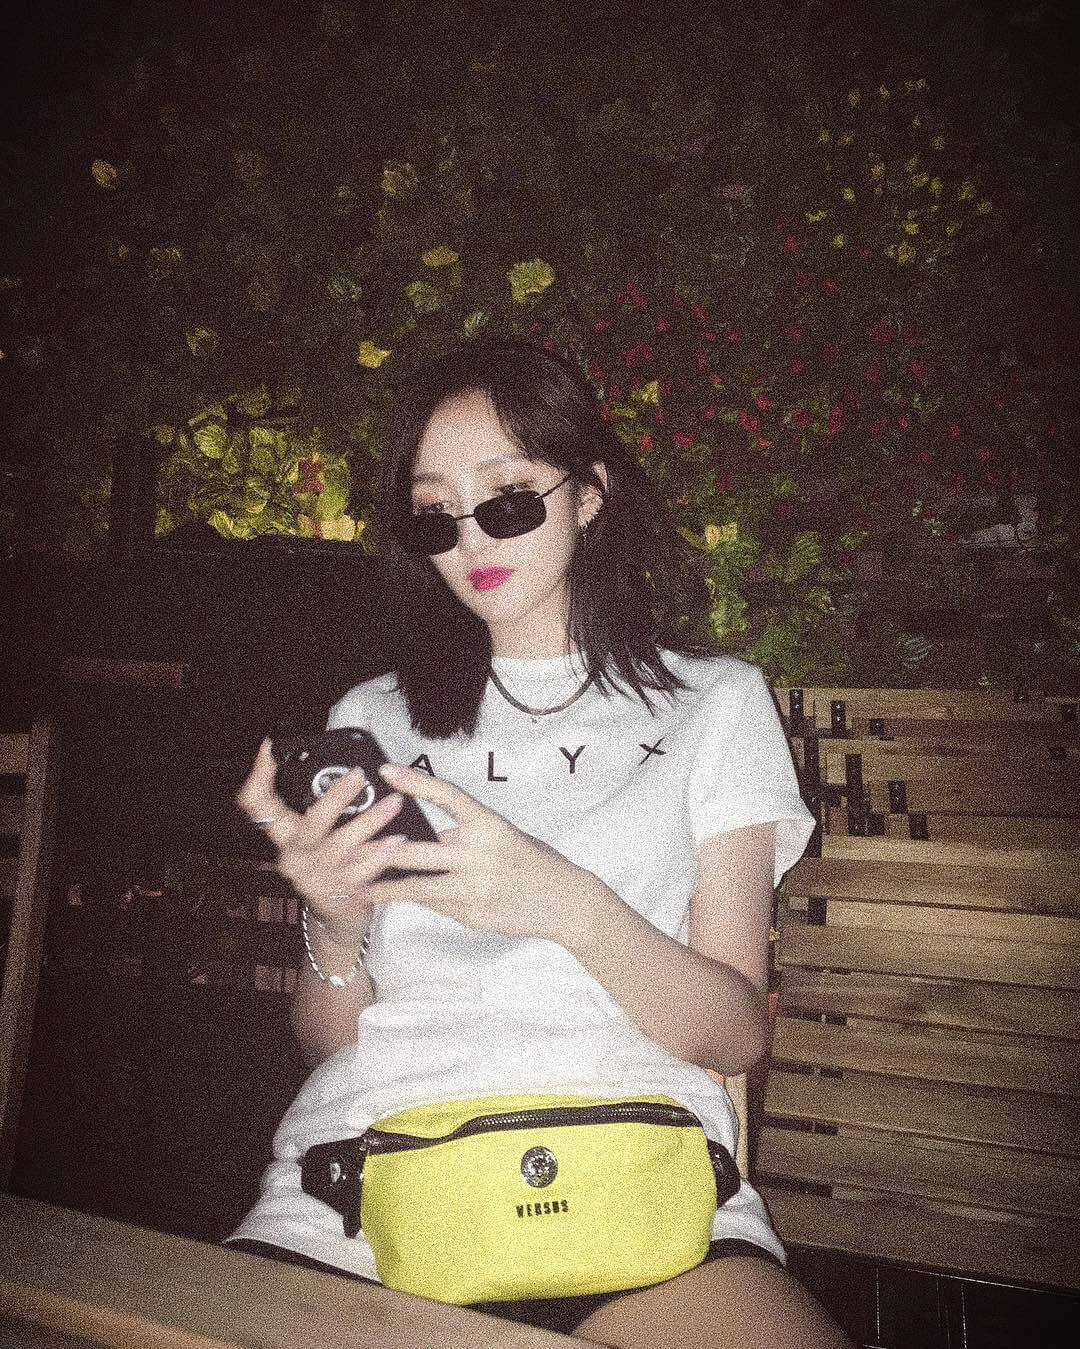 meng jia awesome